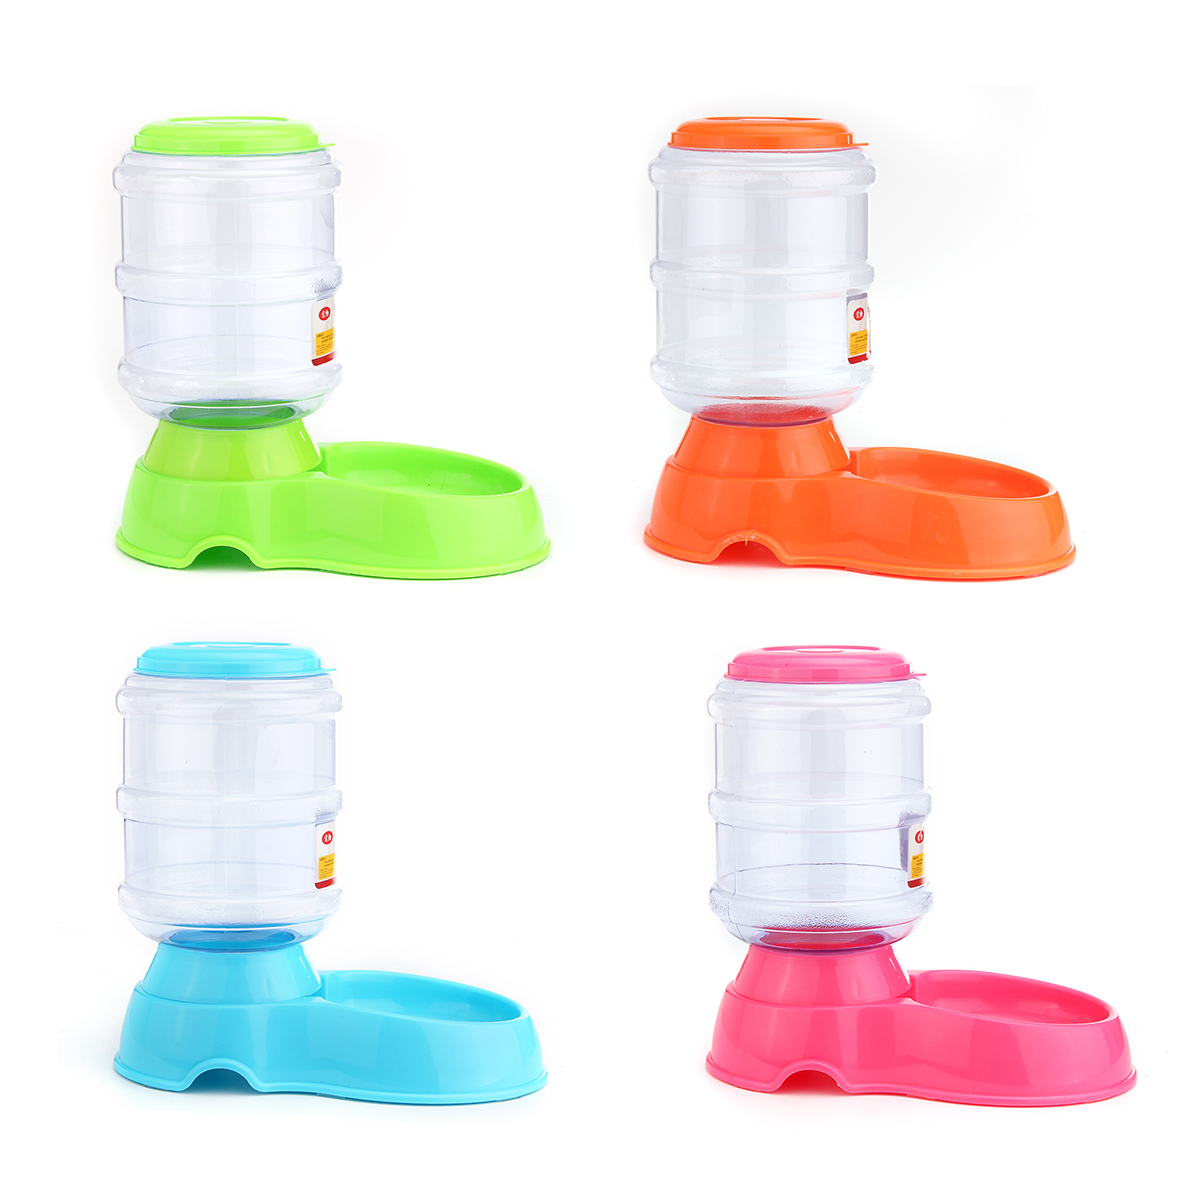 3.5L Automatic Pets Feeder Food Water Dispenser Detachable Cats Dogs Puppy Feeding Machine ,Pets Feeder